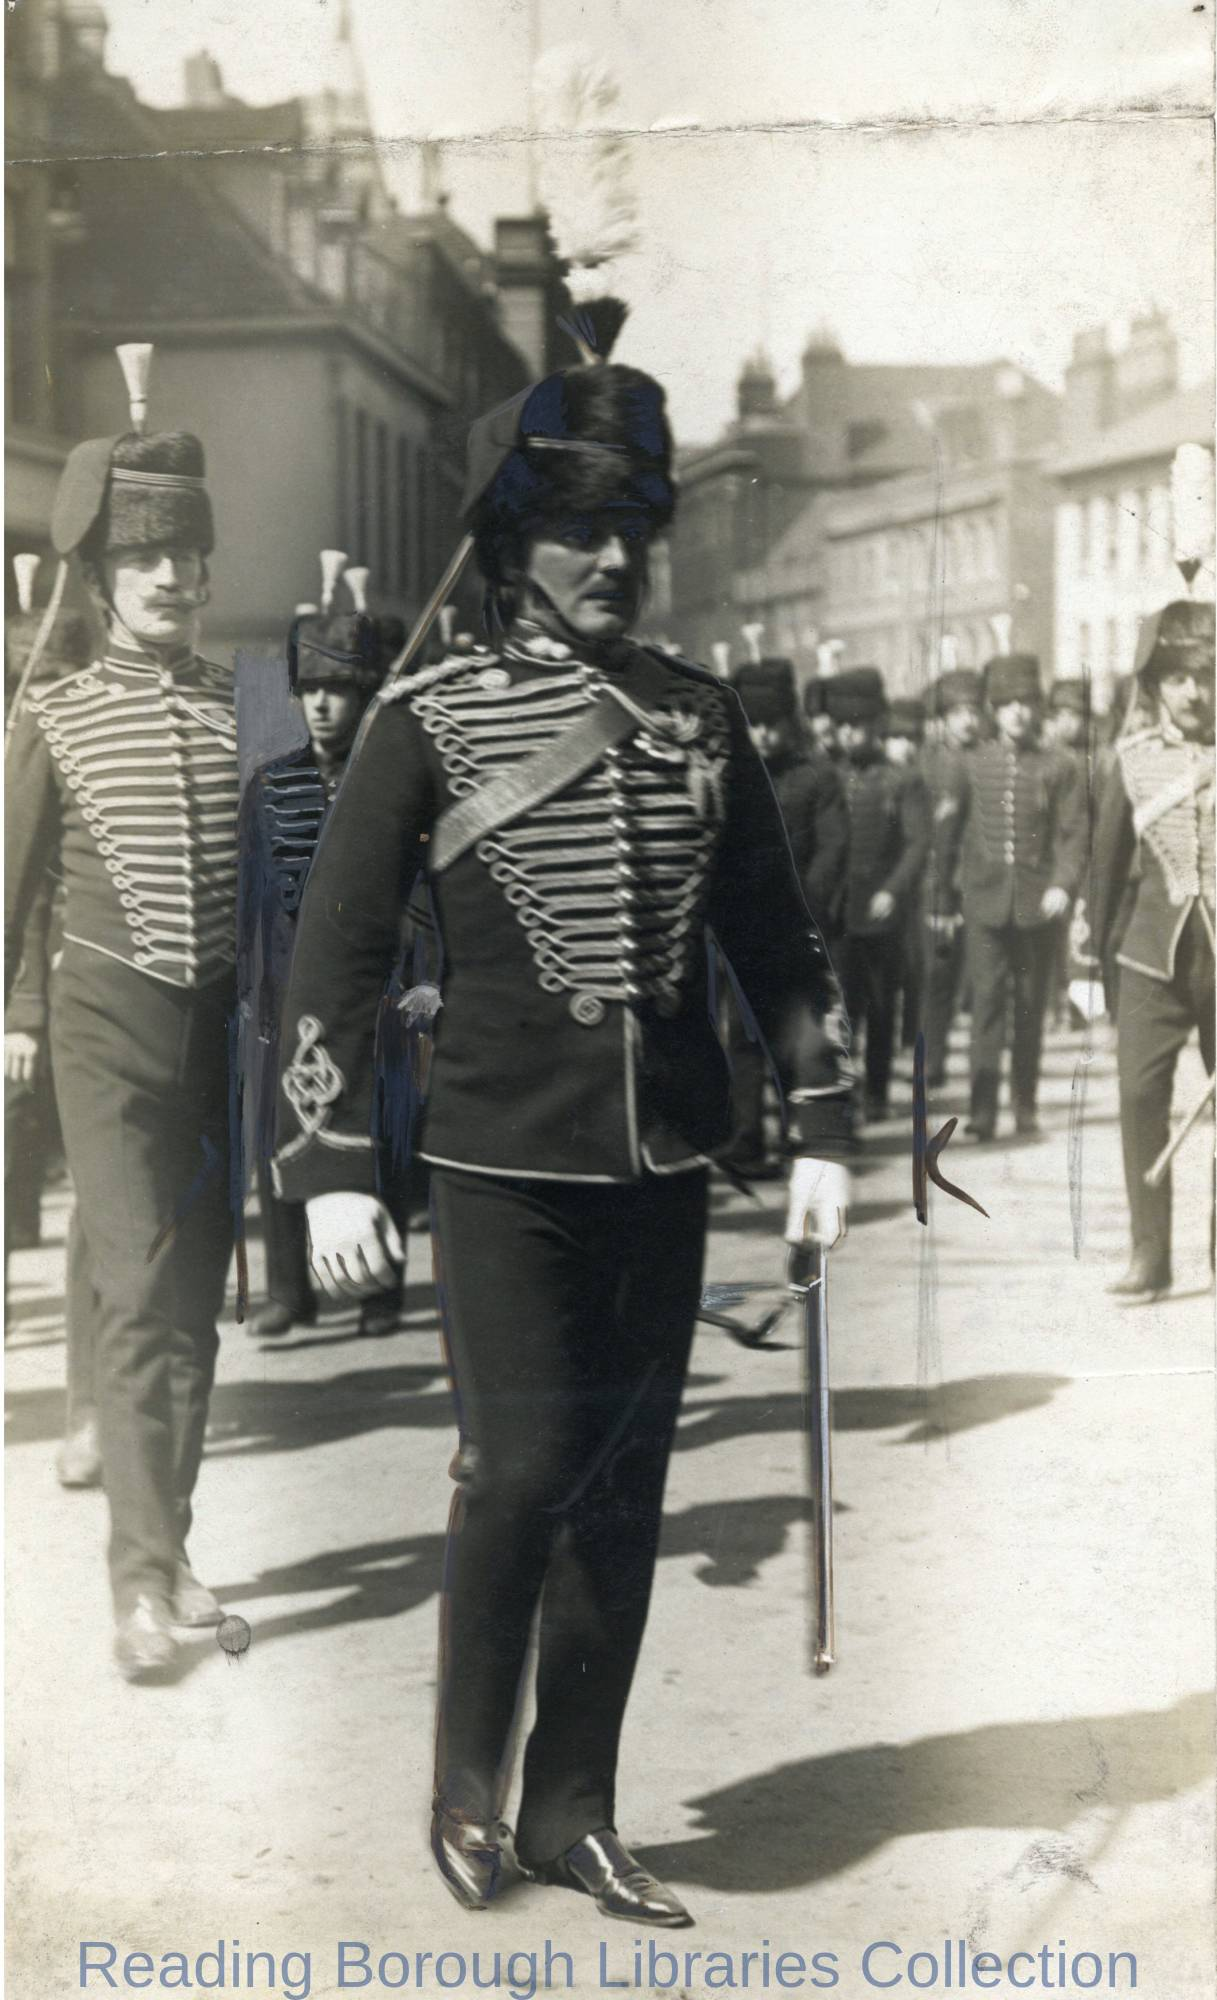 Sir Leslie Orme Wilson (1876-1955), Captain of the Royal Horse Artillery (Territorials), Friar Street, Reading, c1913.